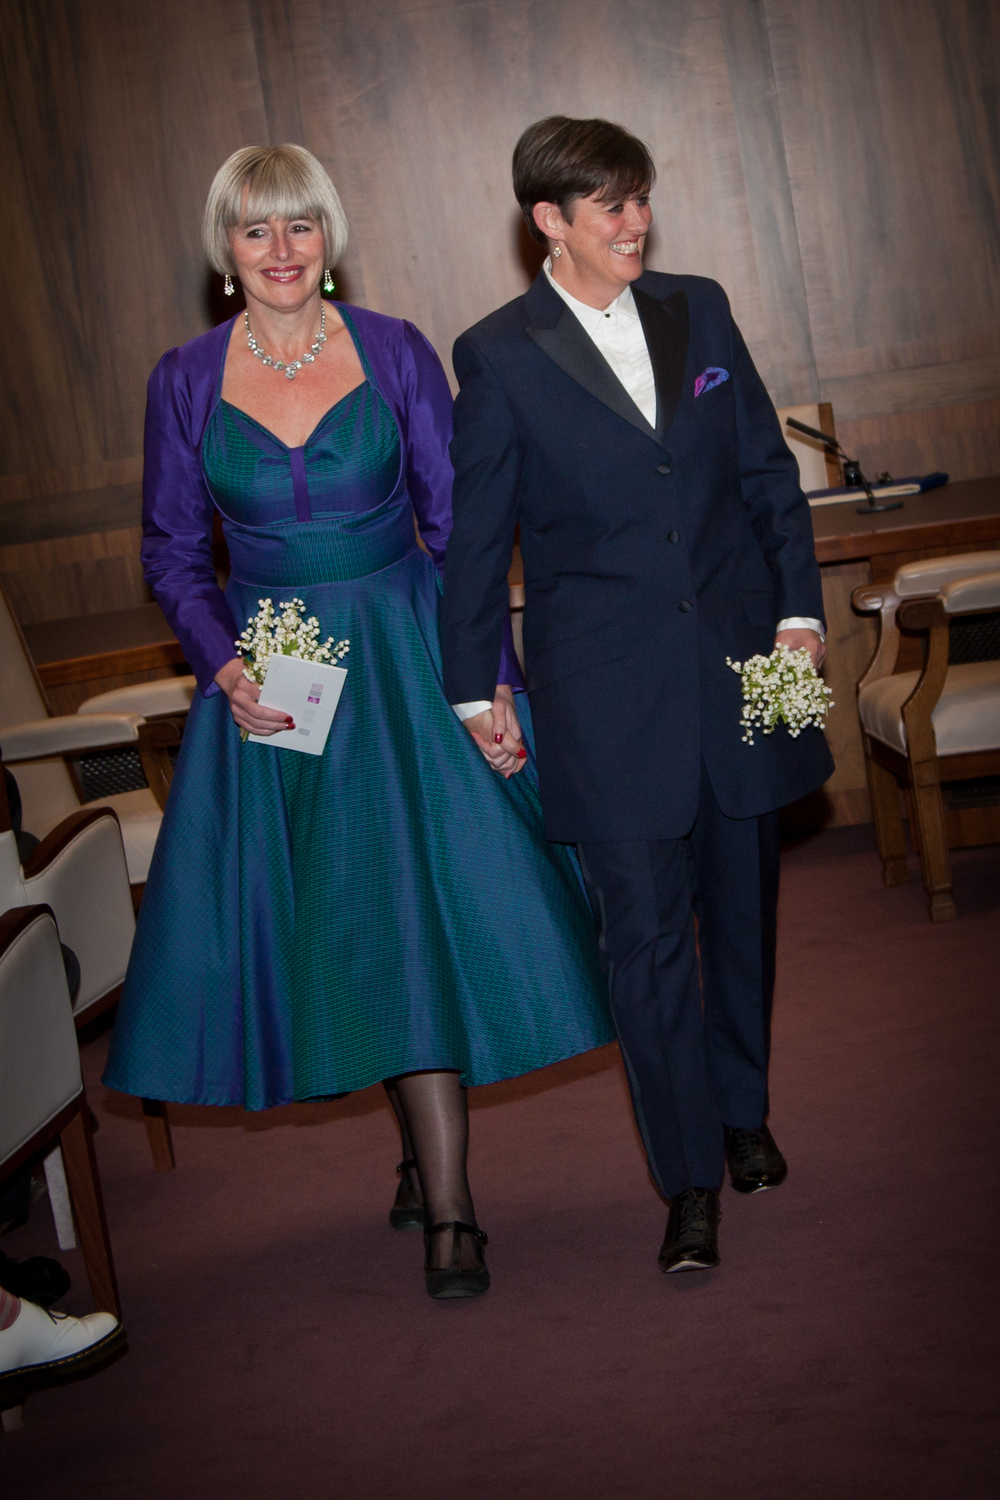 jane-julie-wedding-same-sex-civil-partnership-lesbian-dinner-suit-midnight-blue-wool-mohair-bespoke-all-uk-made.jpg